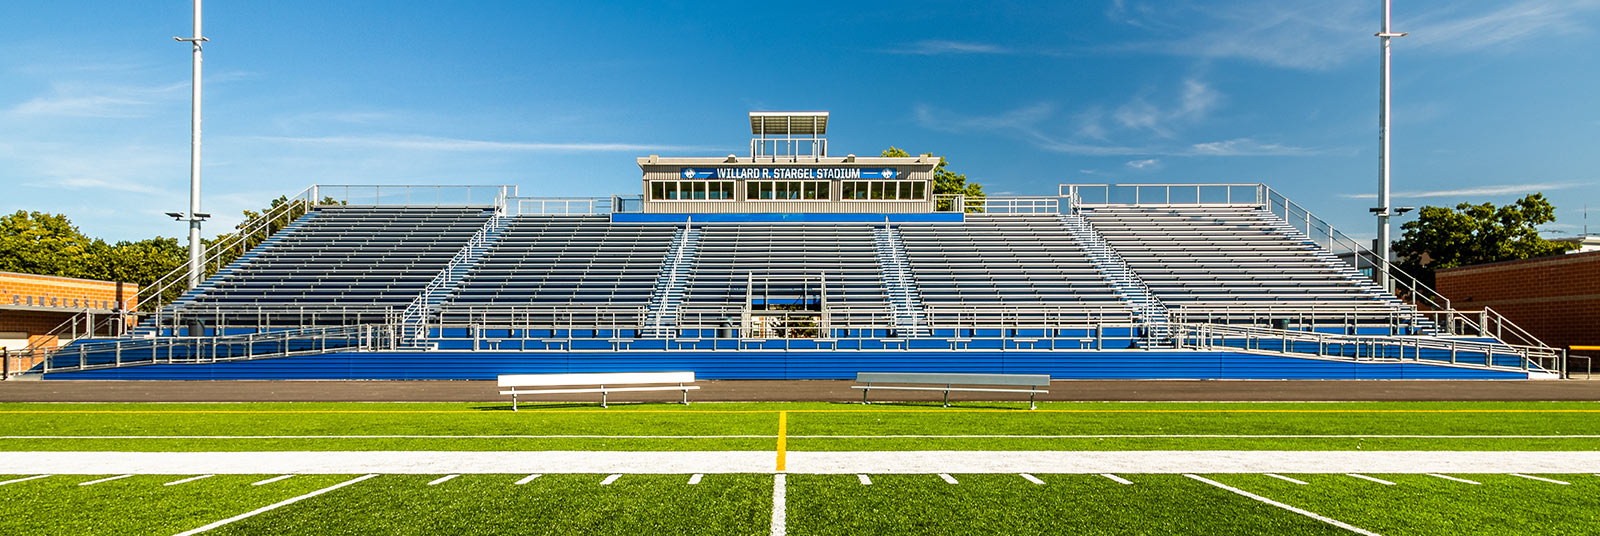 View from football field of the bleachers at the Williard R. Stargel Stadium in Cincinnati, Ohio.